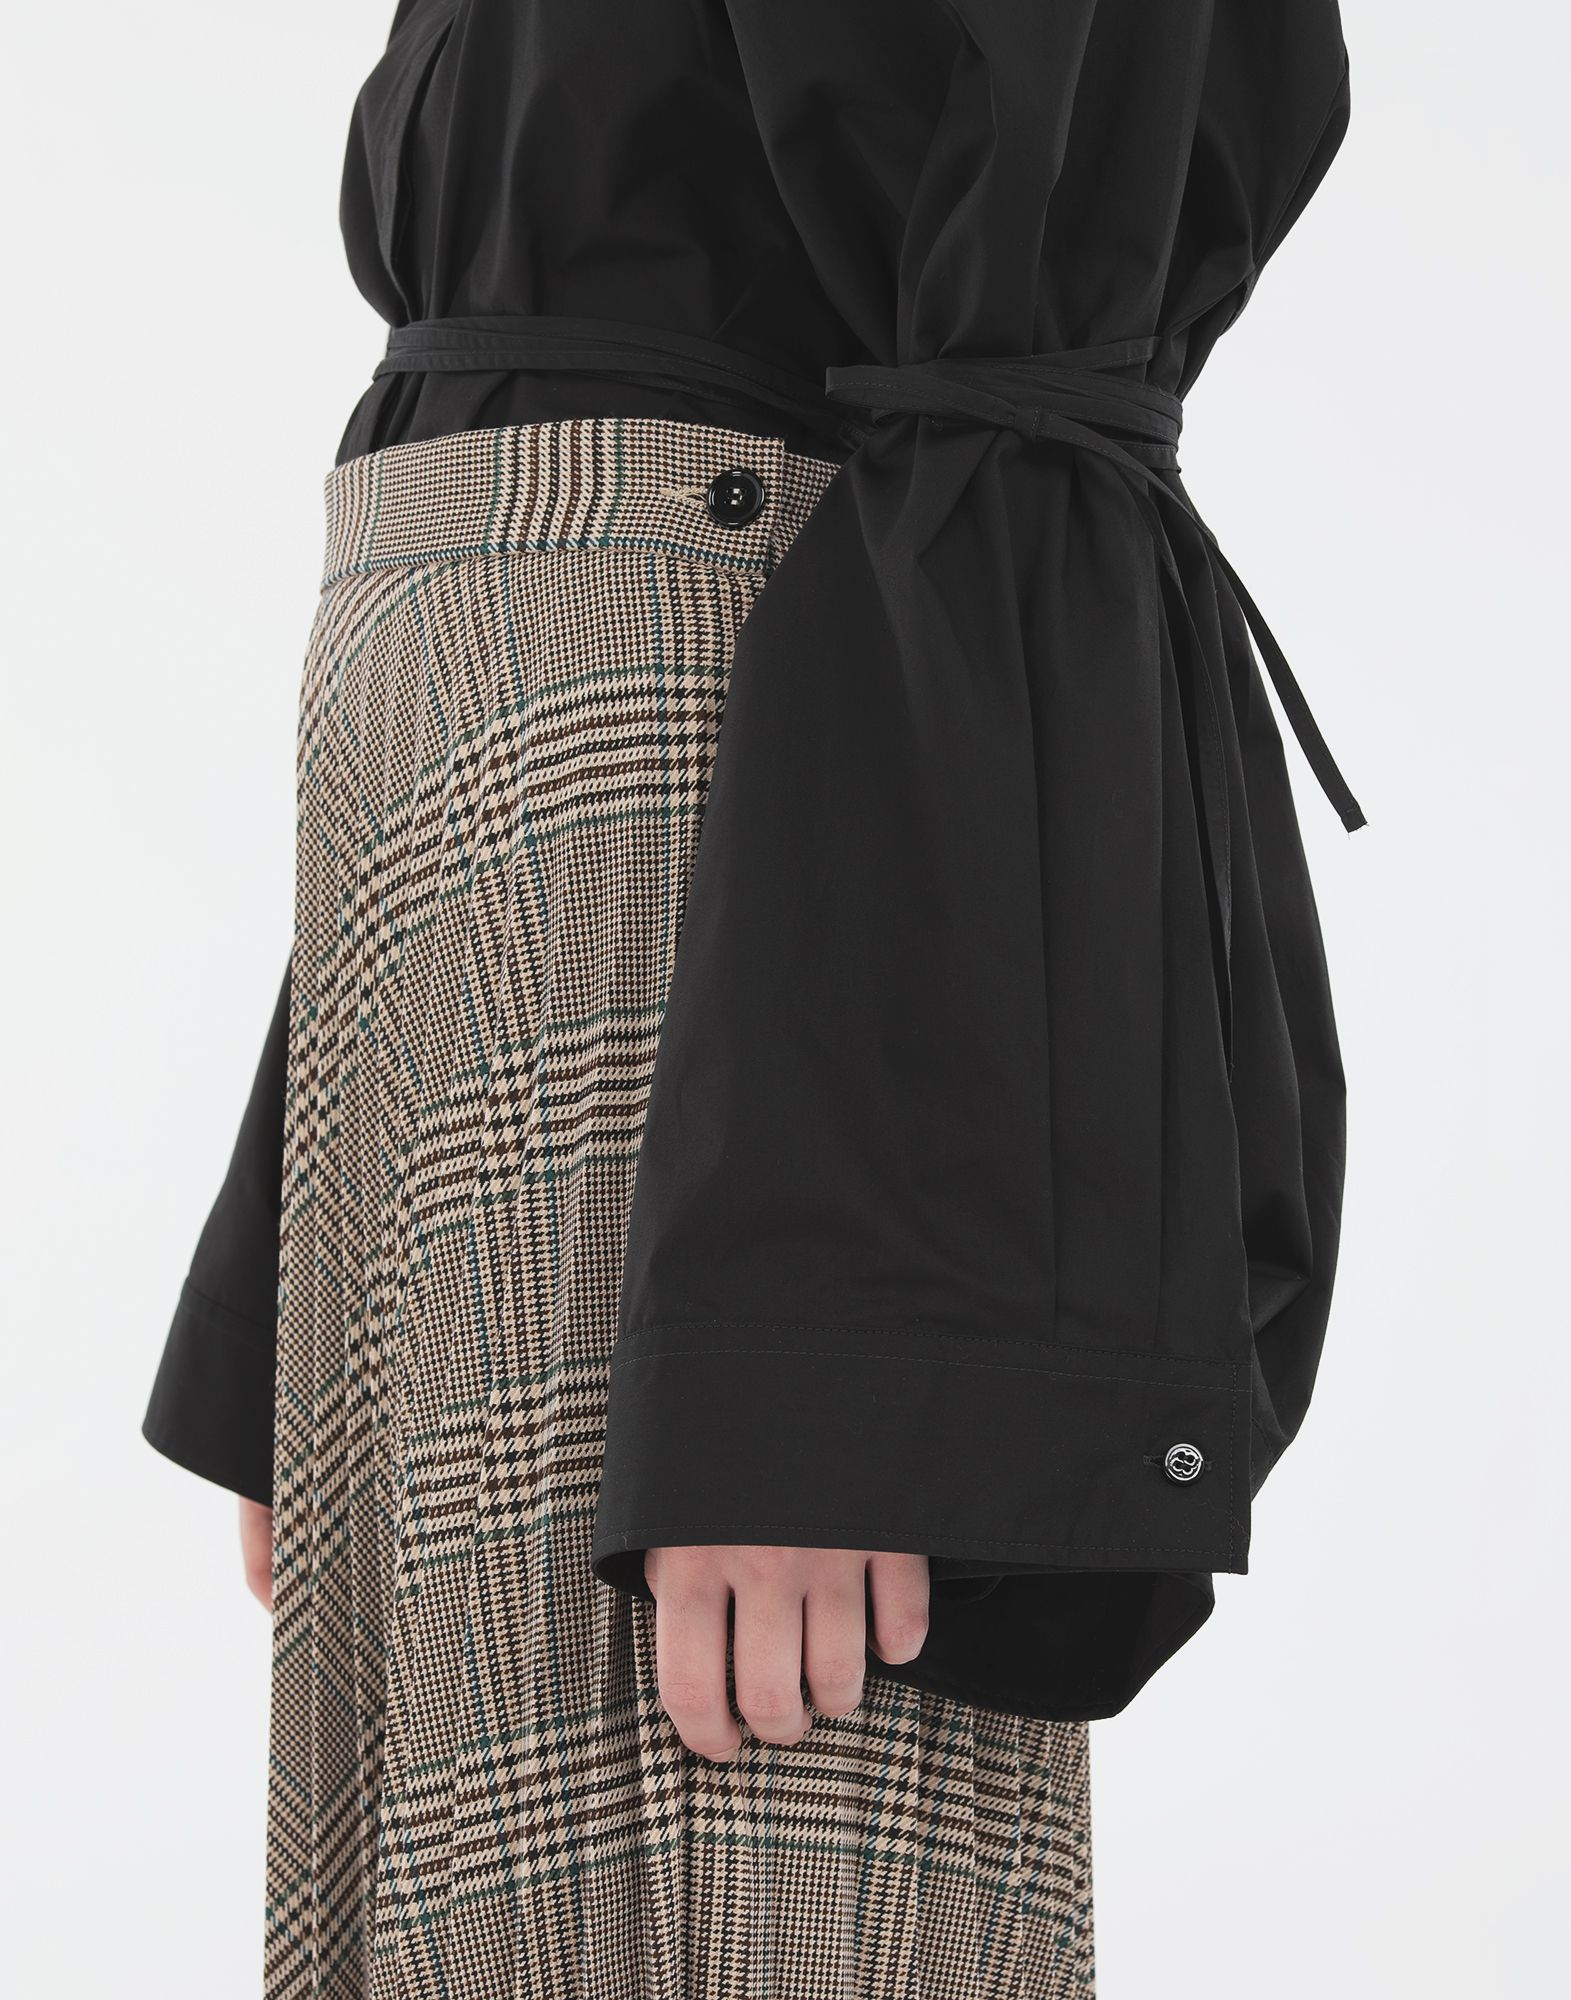 MM6 MAISON MARGIELA Checked pleated skirt 3/4 length skirt Woman a